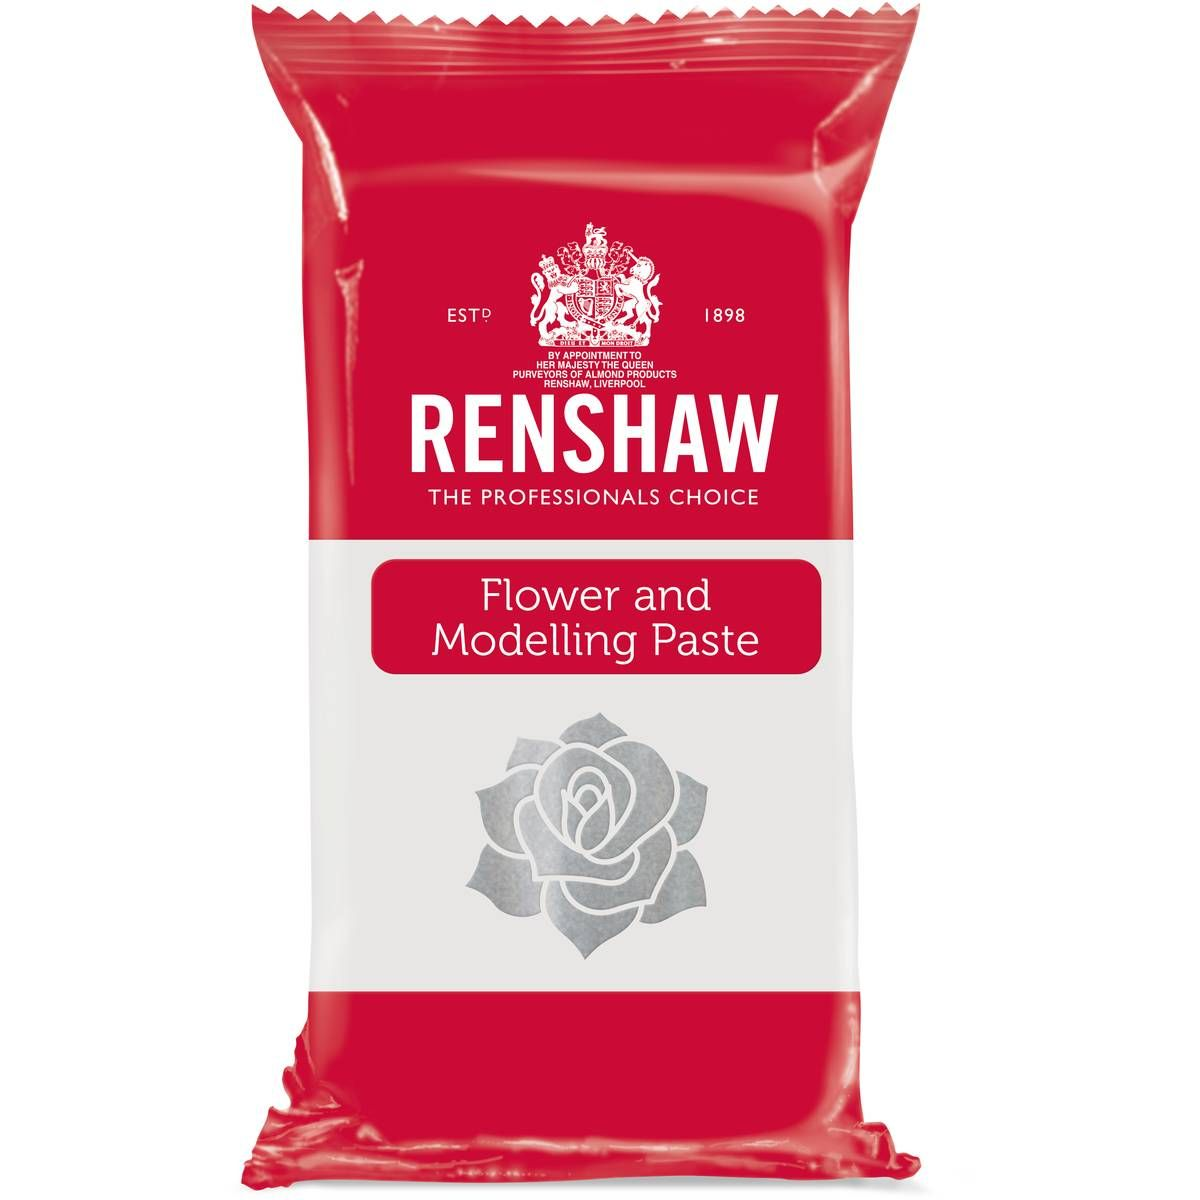 Renshaw White Flower & Modelling Paste